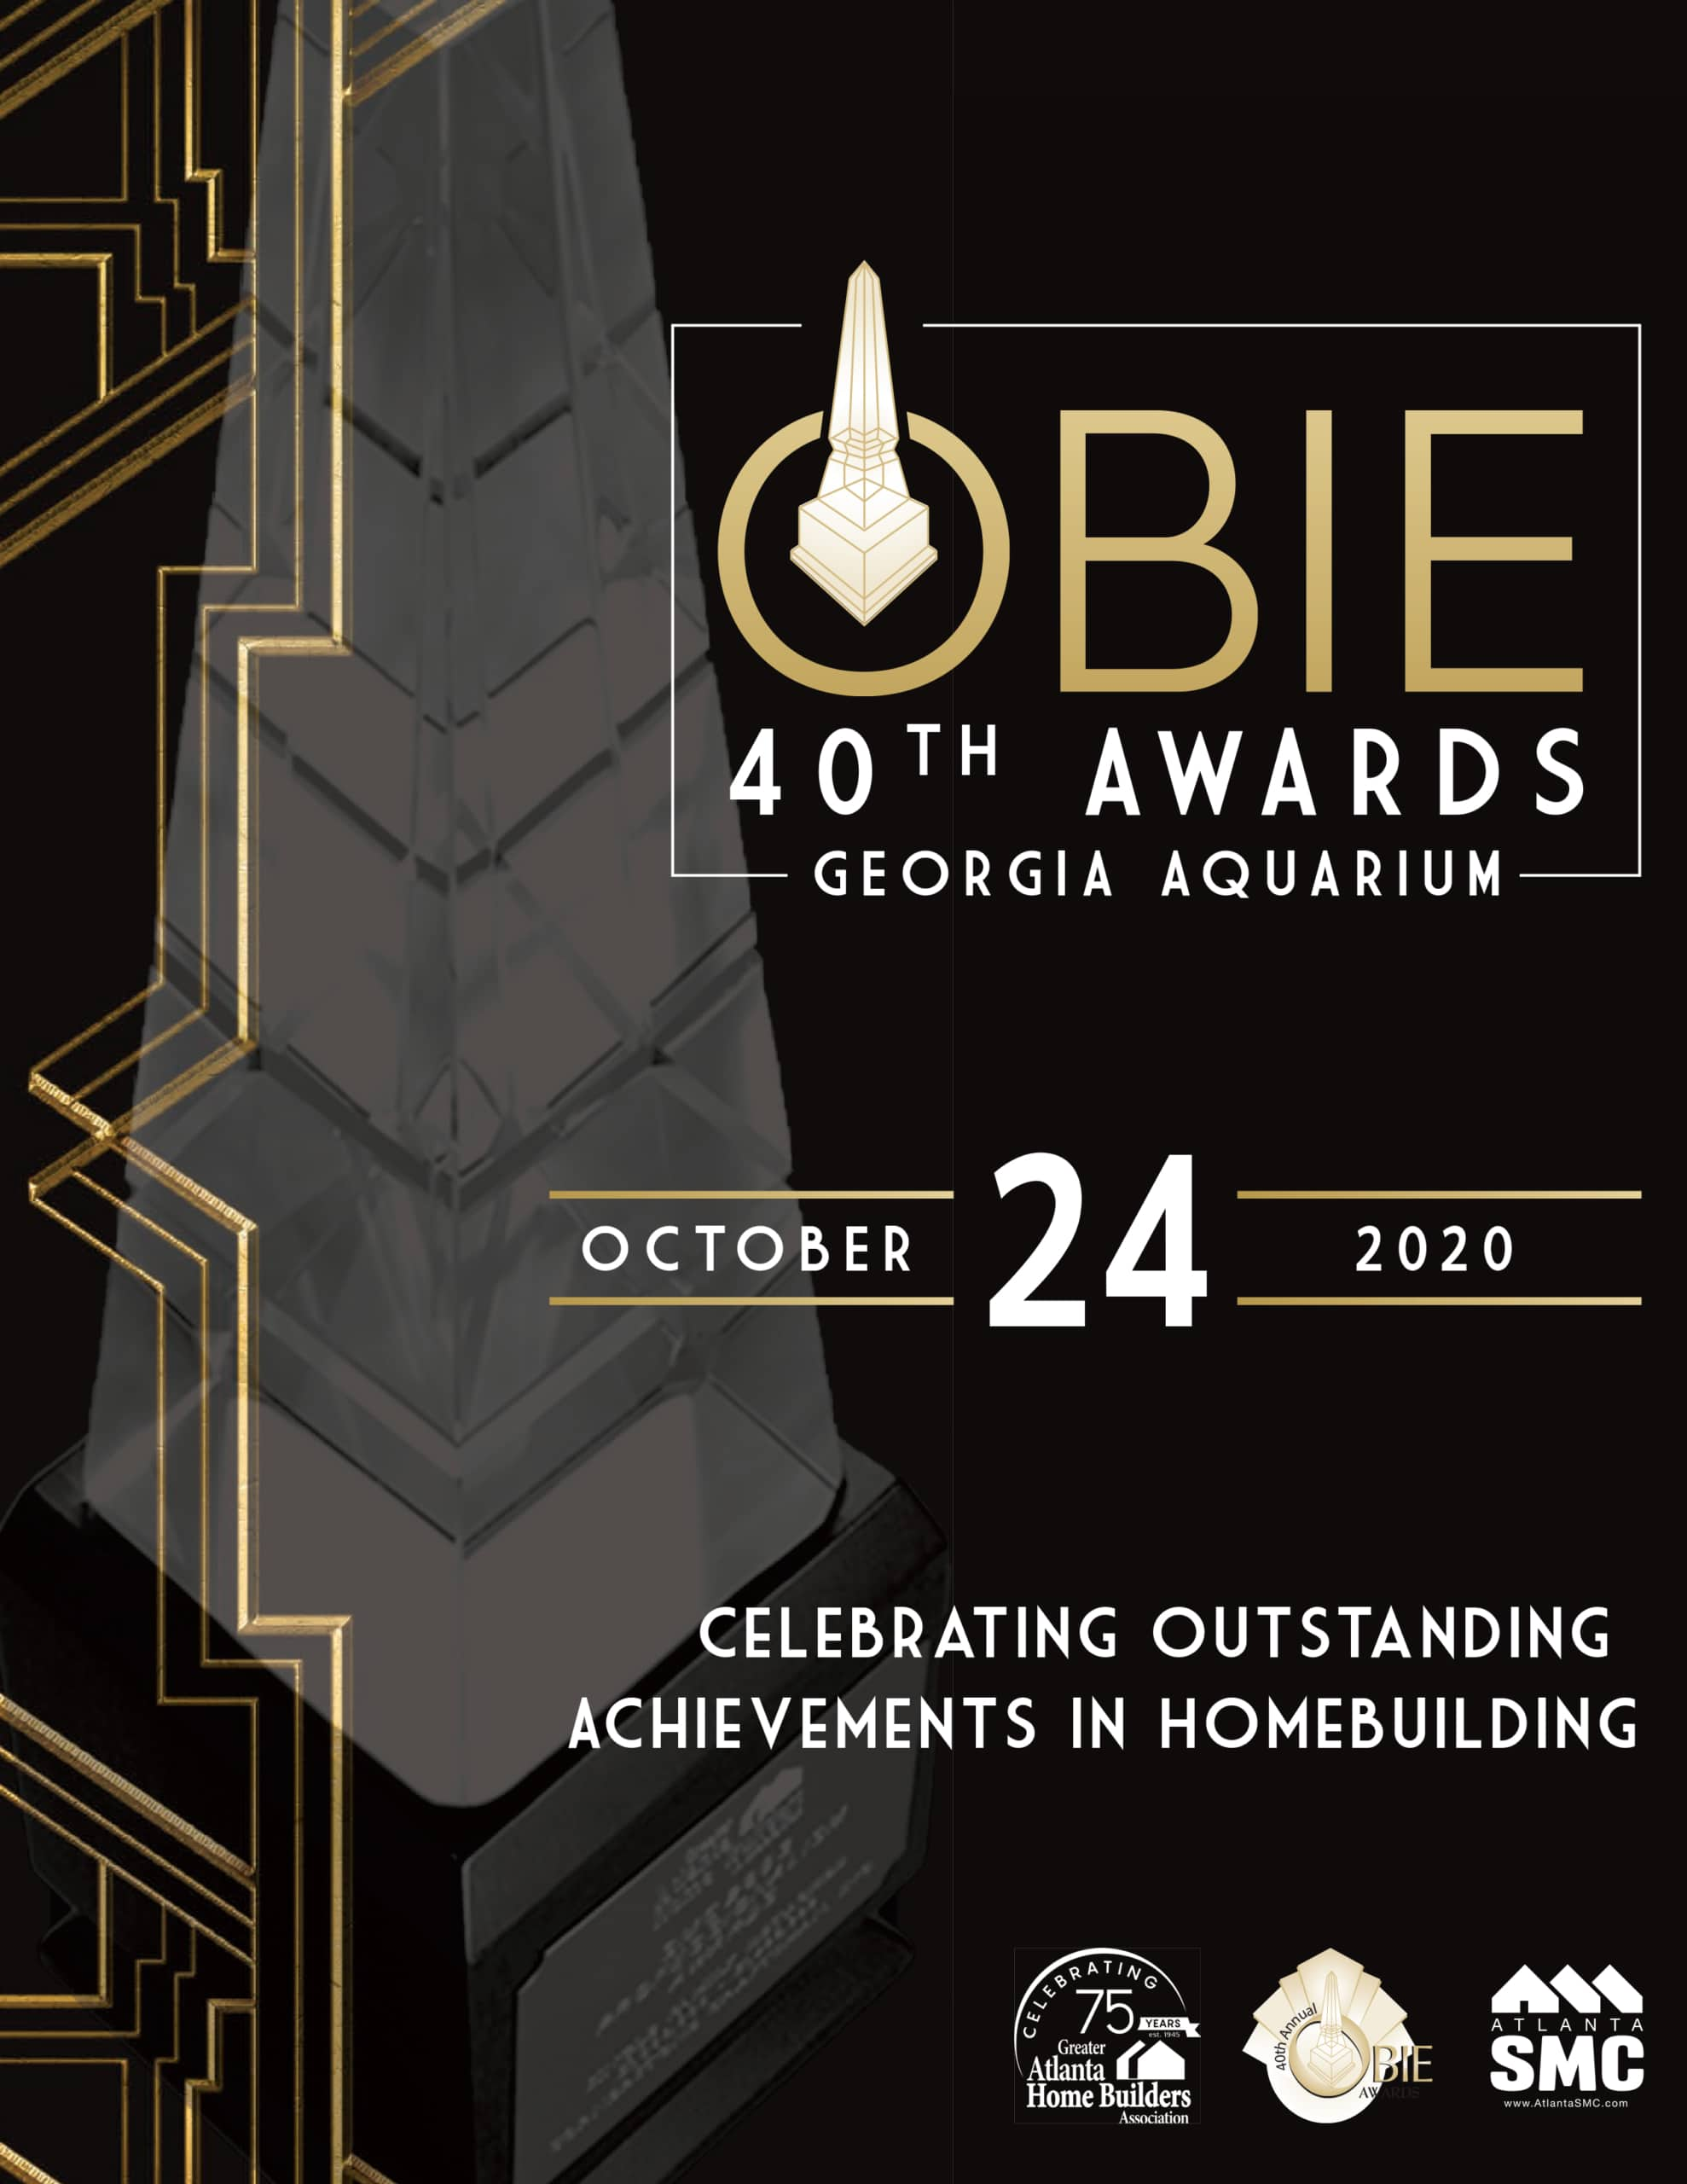 Obie Awards Celebrating Outstanding Achievement in Homebuilding